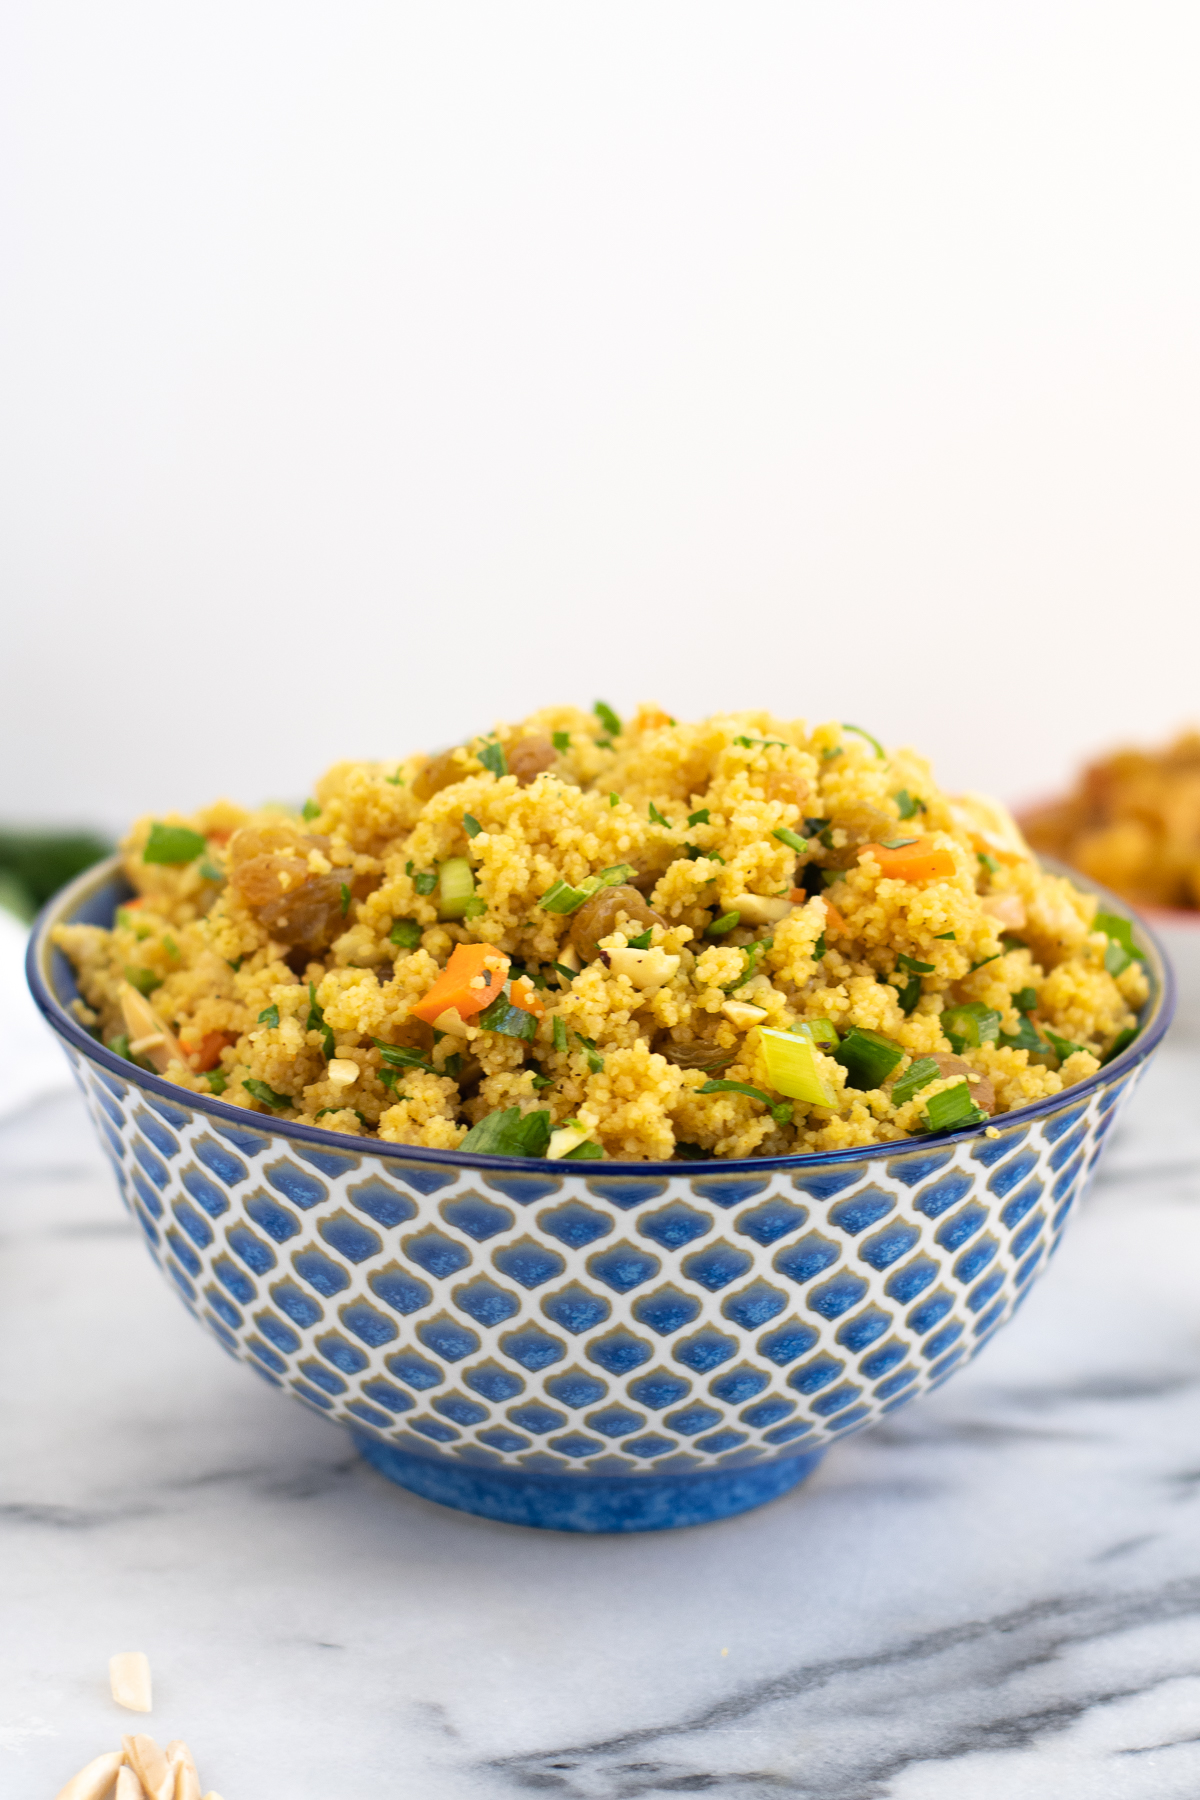 Quick to prepare, this Curried Couscous is a healthy side dish that is full of flavor and textures! #side #couscous #curry #easyrecipe #recipe #vegan